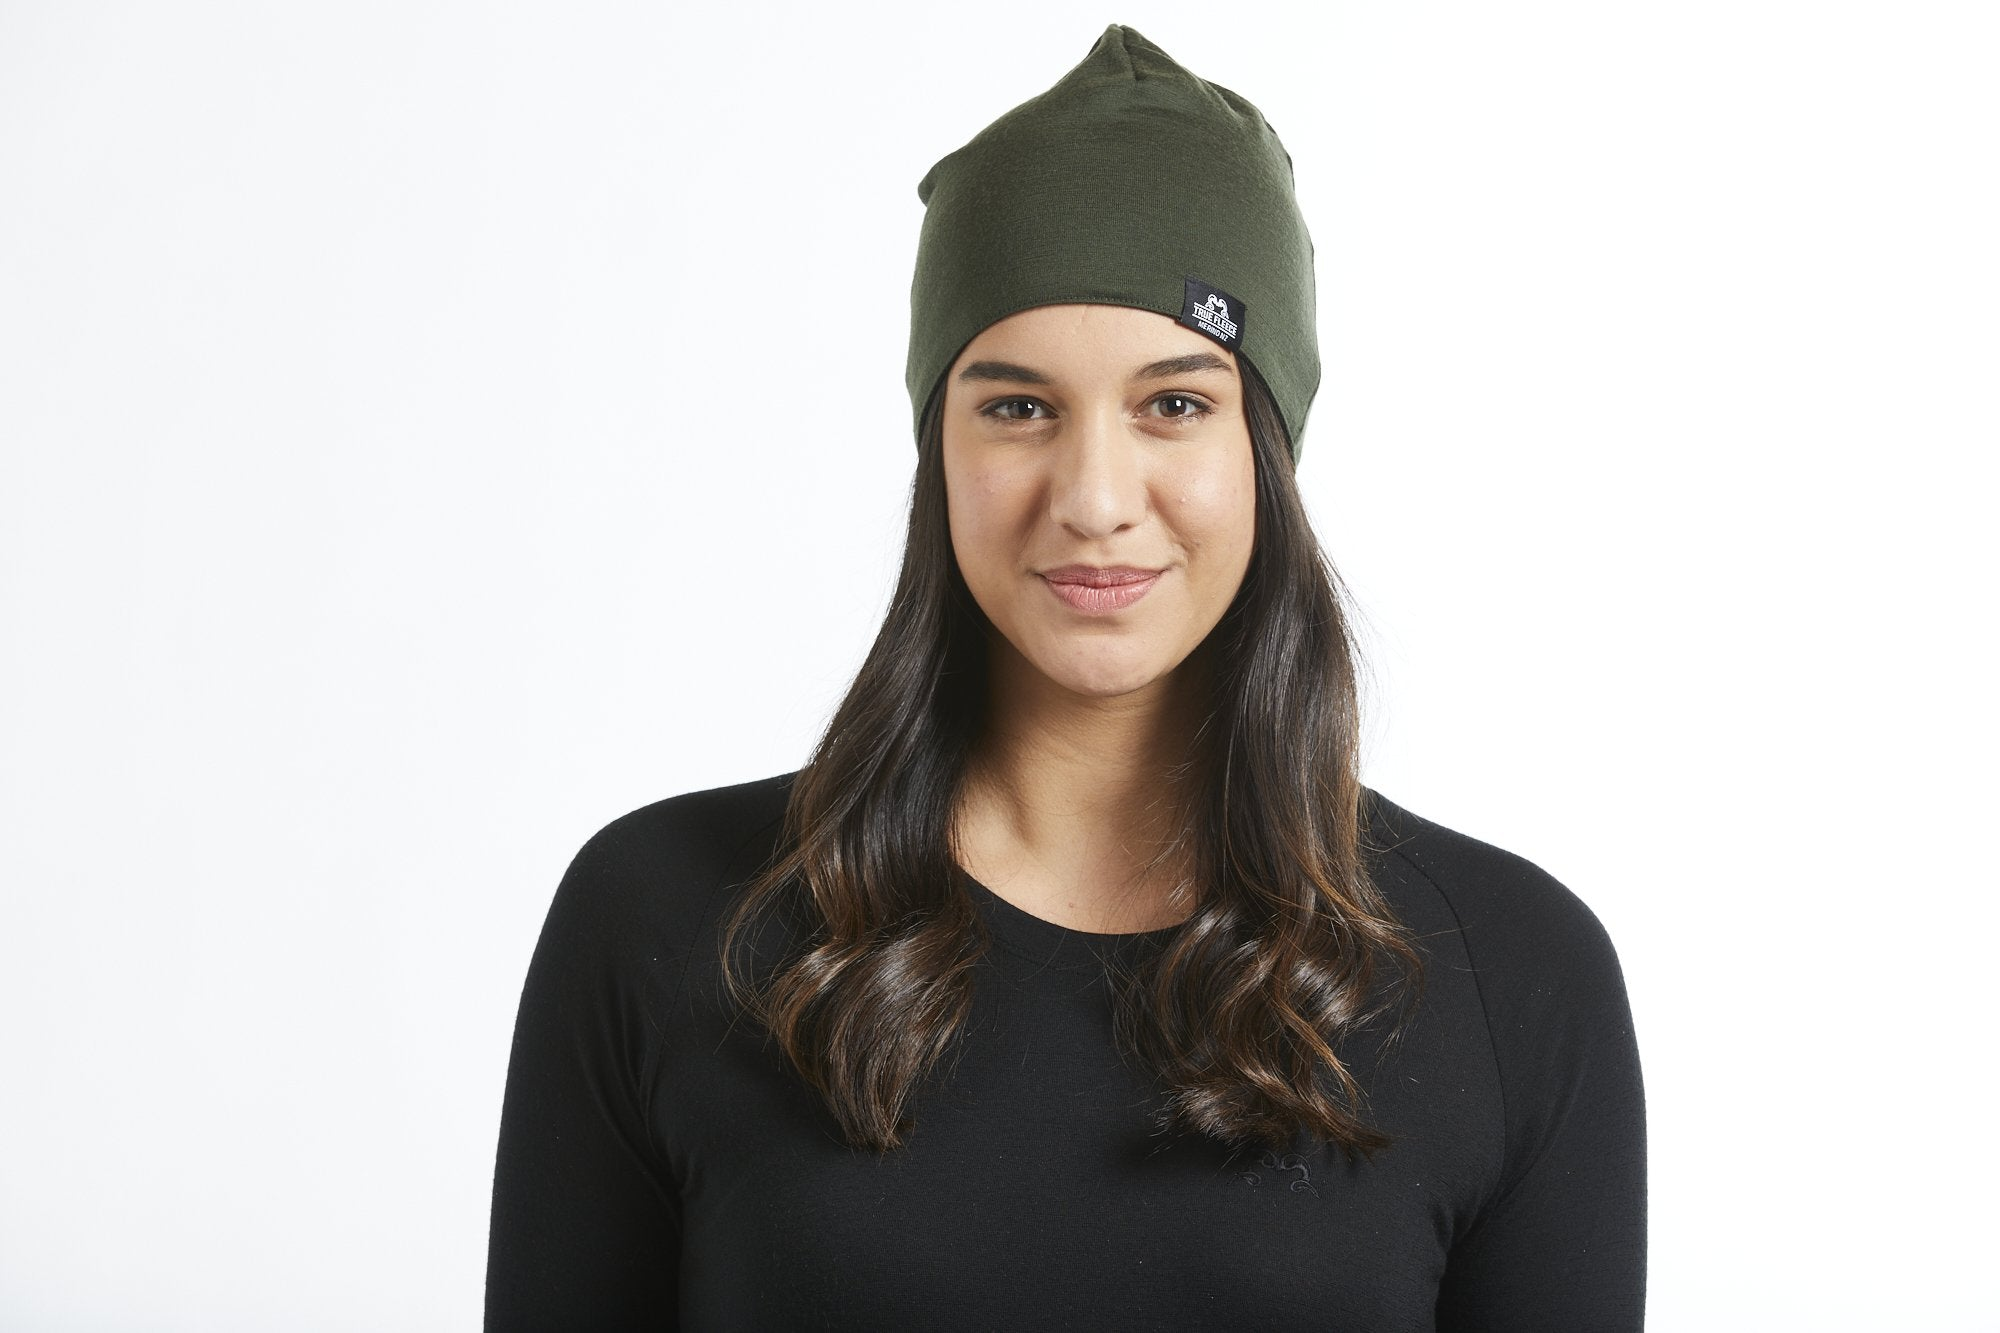 True Fleece Merino wool Snug fit warm soft beanie